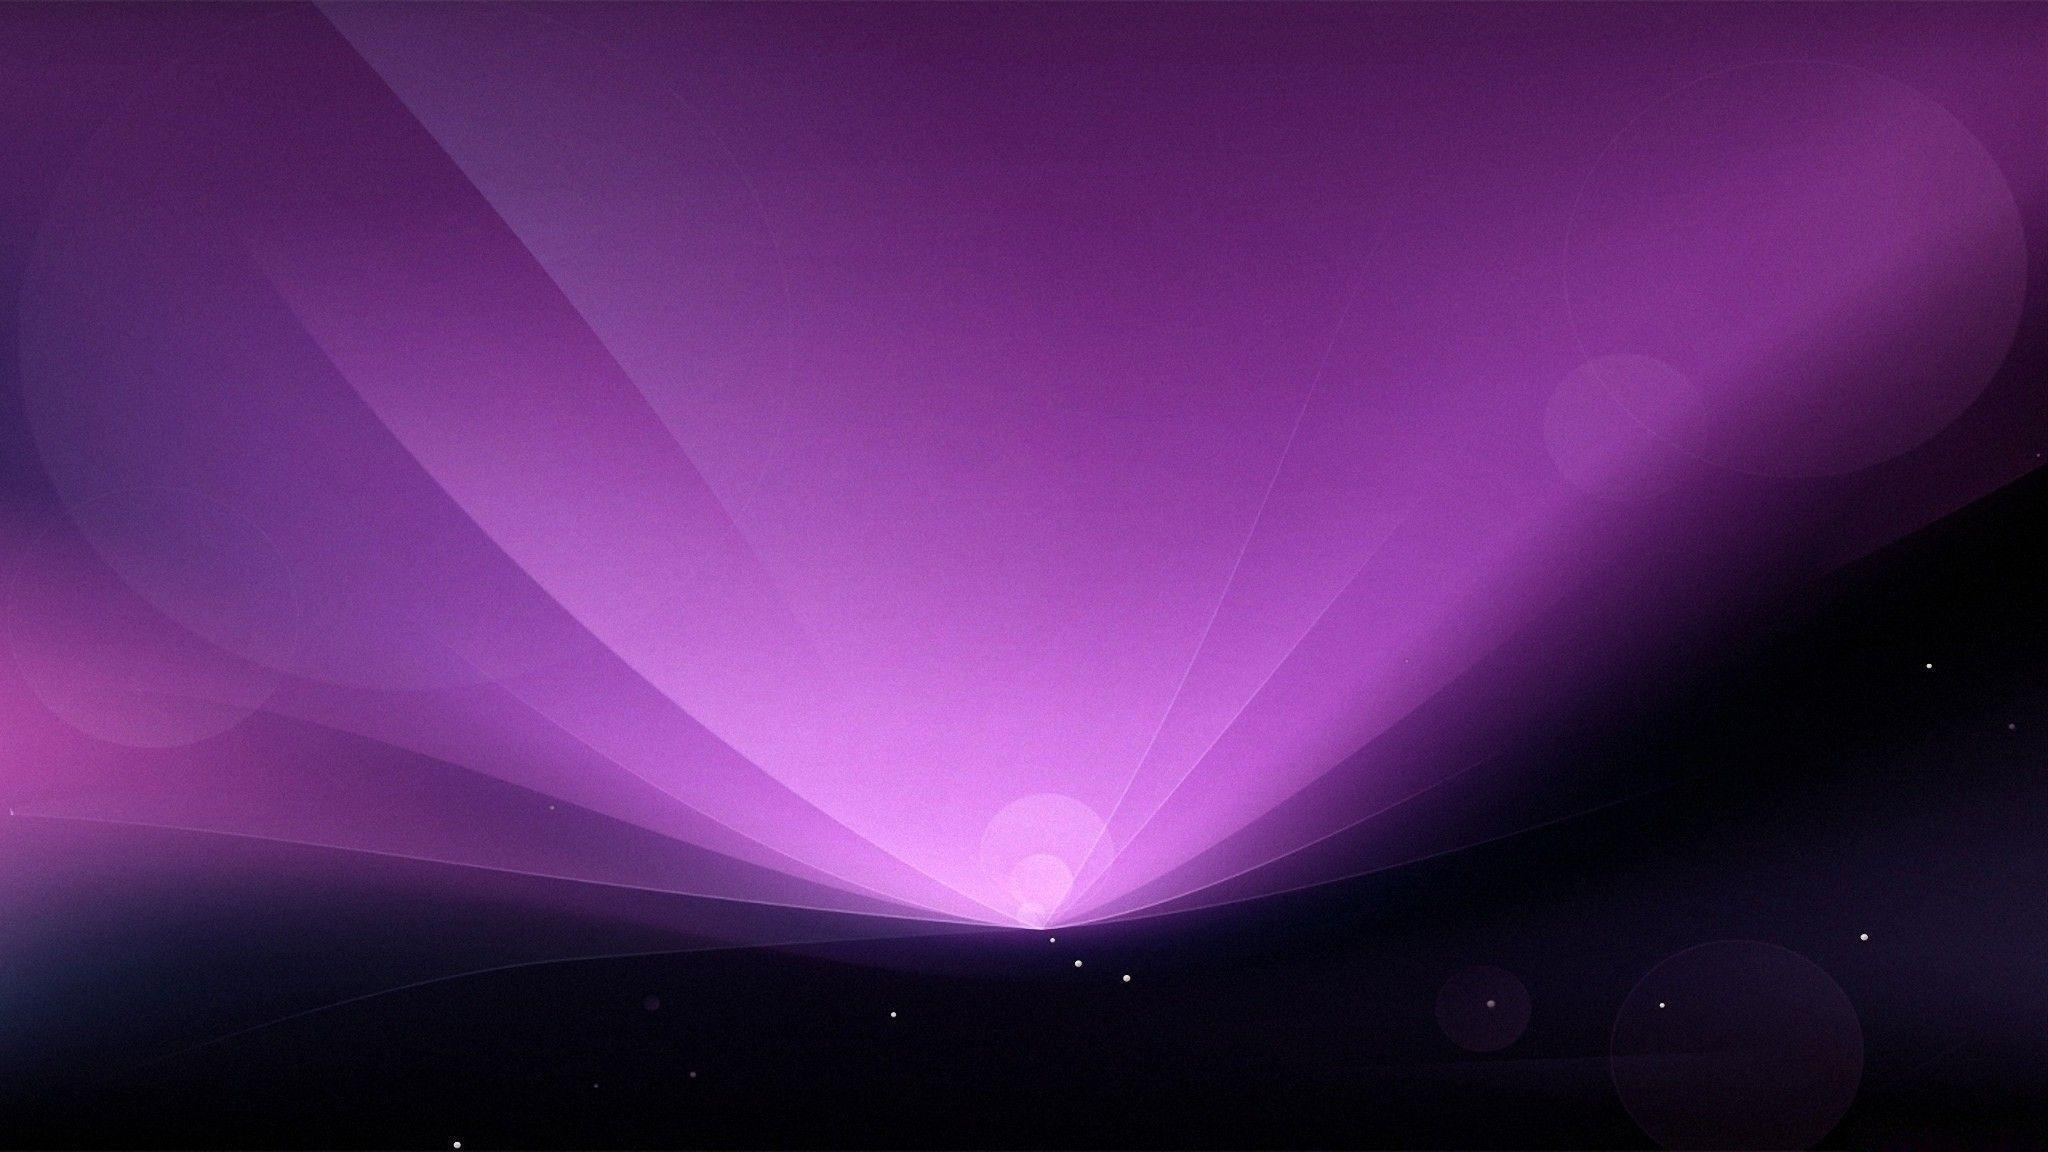 Mac Os X Wallpapers 27497 HD Wallpapers